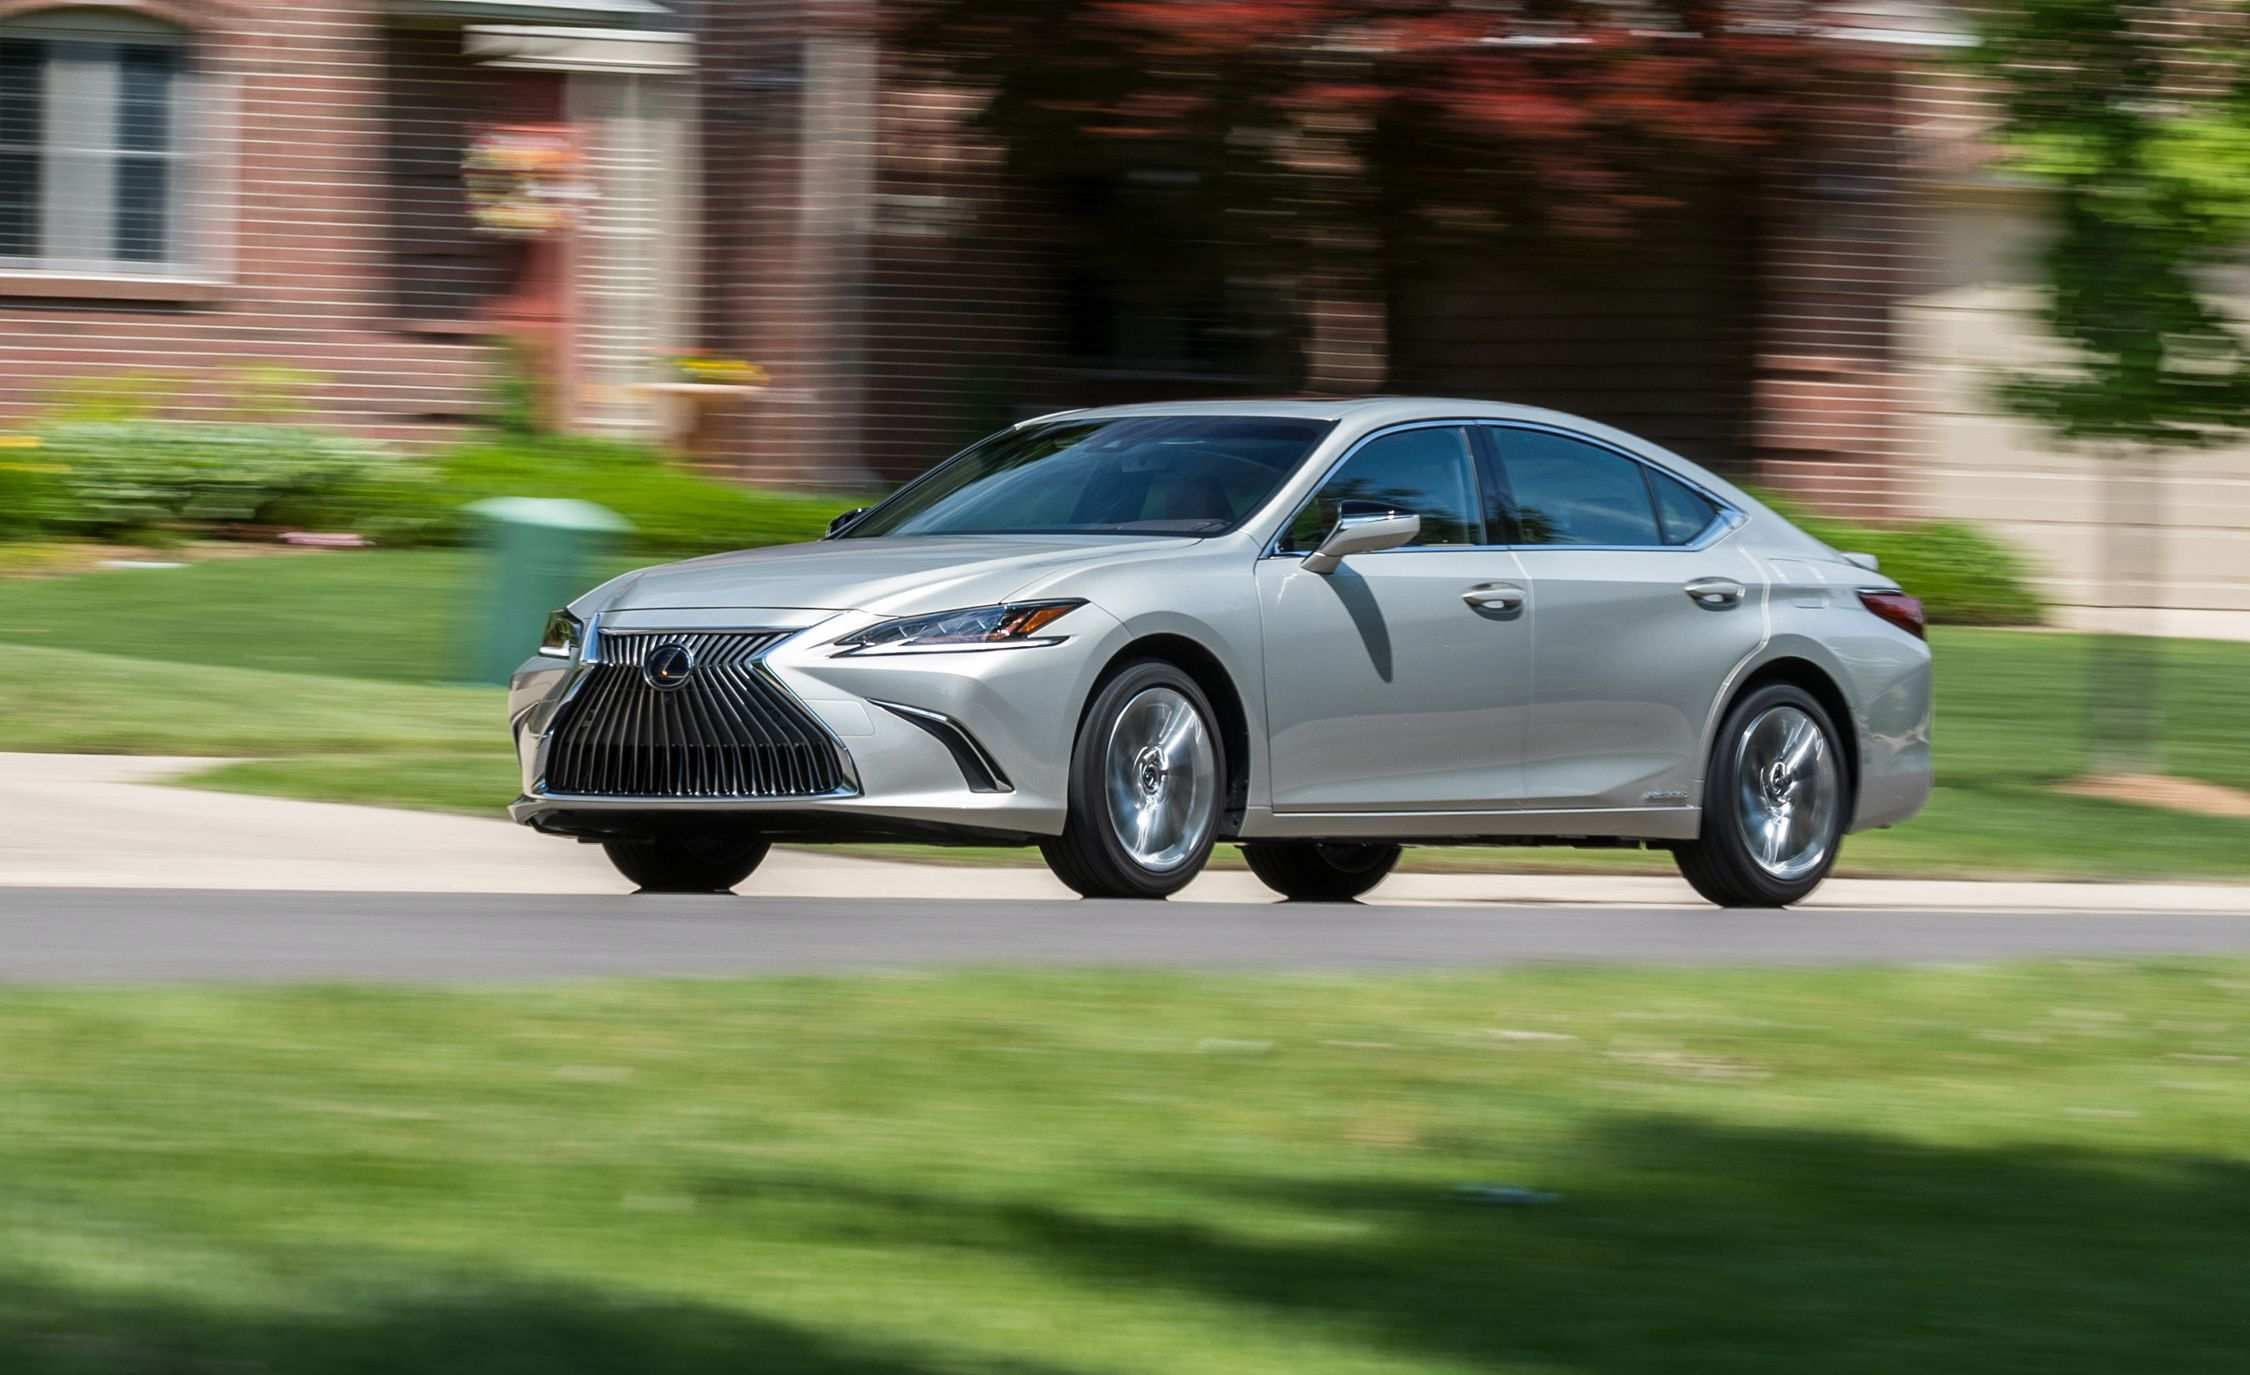 66 Best Review 2019 Lexus Hybrid Images for 2019 Lexus Hybrid